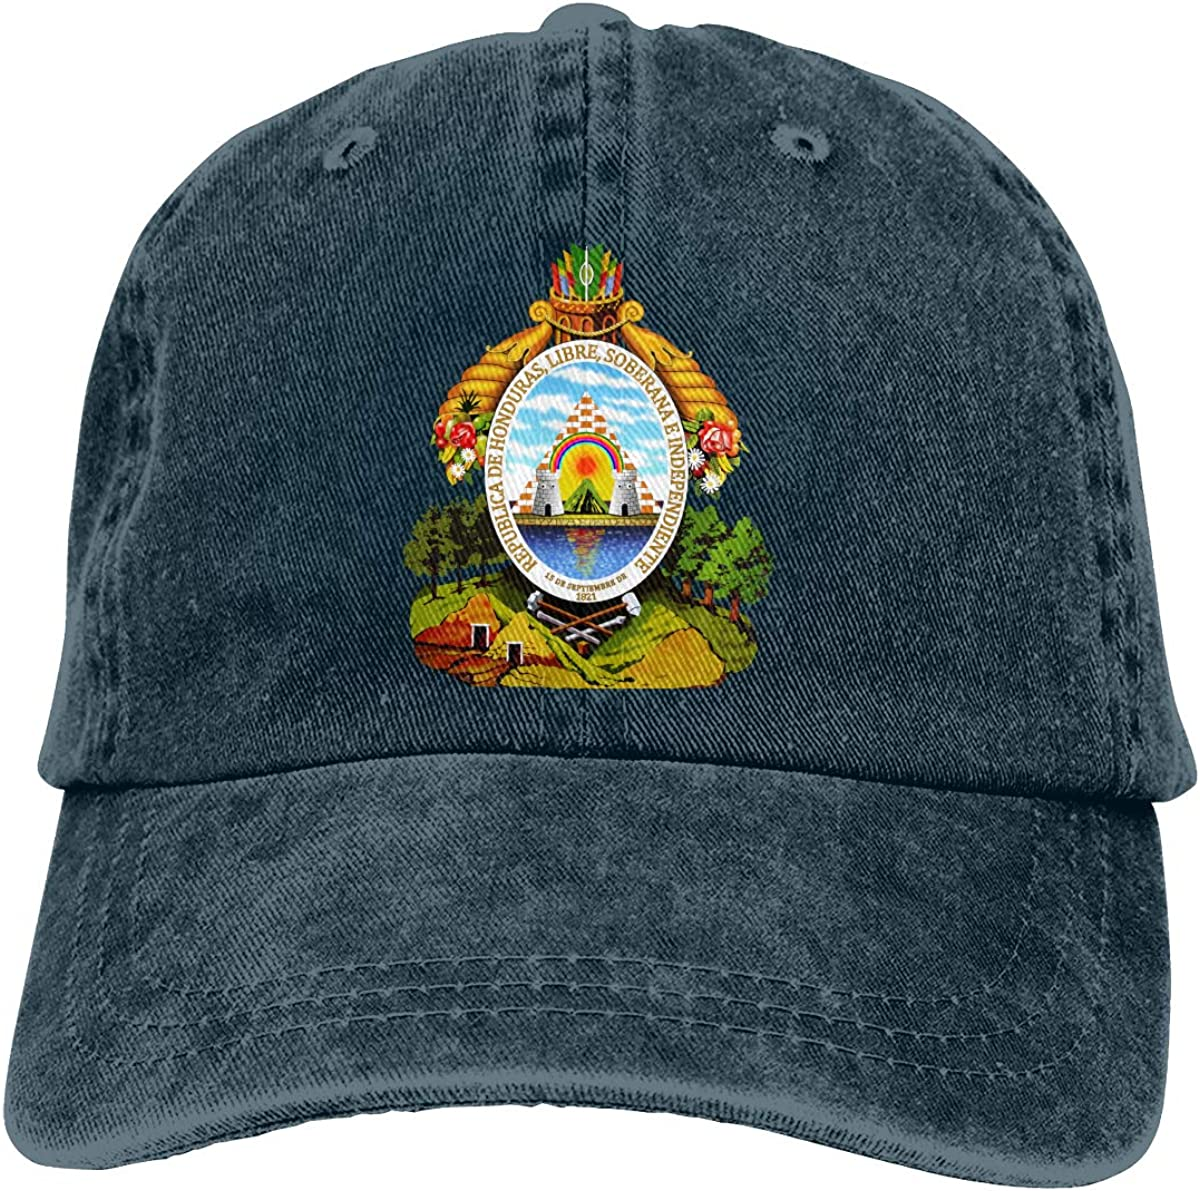 Best4U/&Me Unisex Coat of Arms of Honduras Vintage Washed Dad Hat Popular Adjustable Baseball Cap